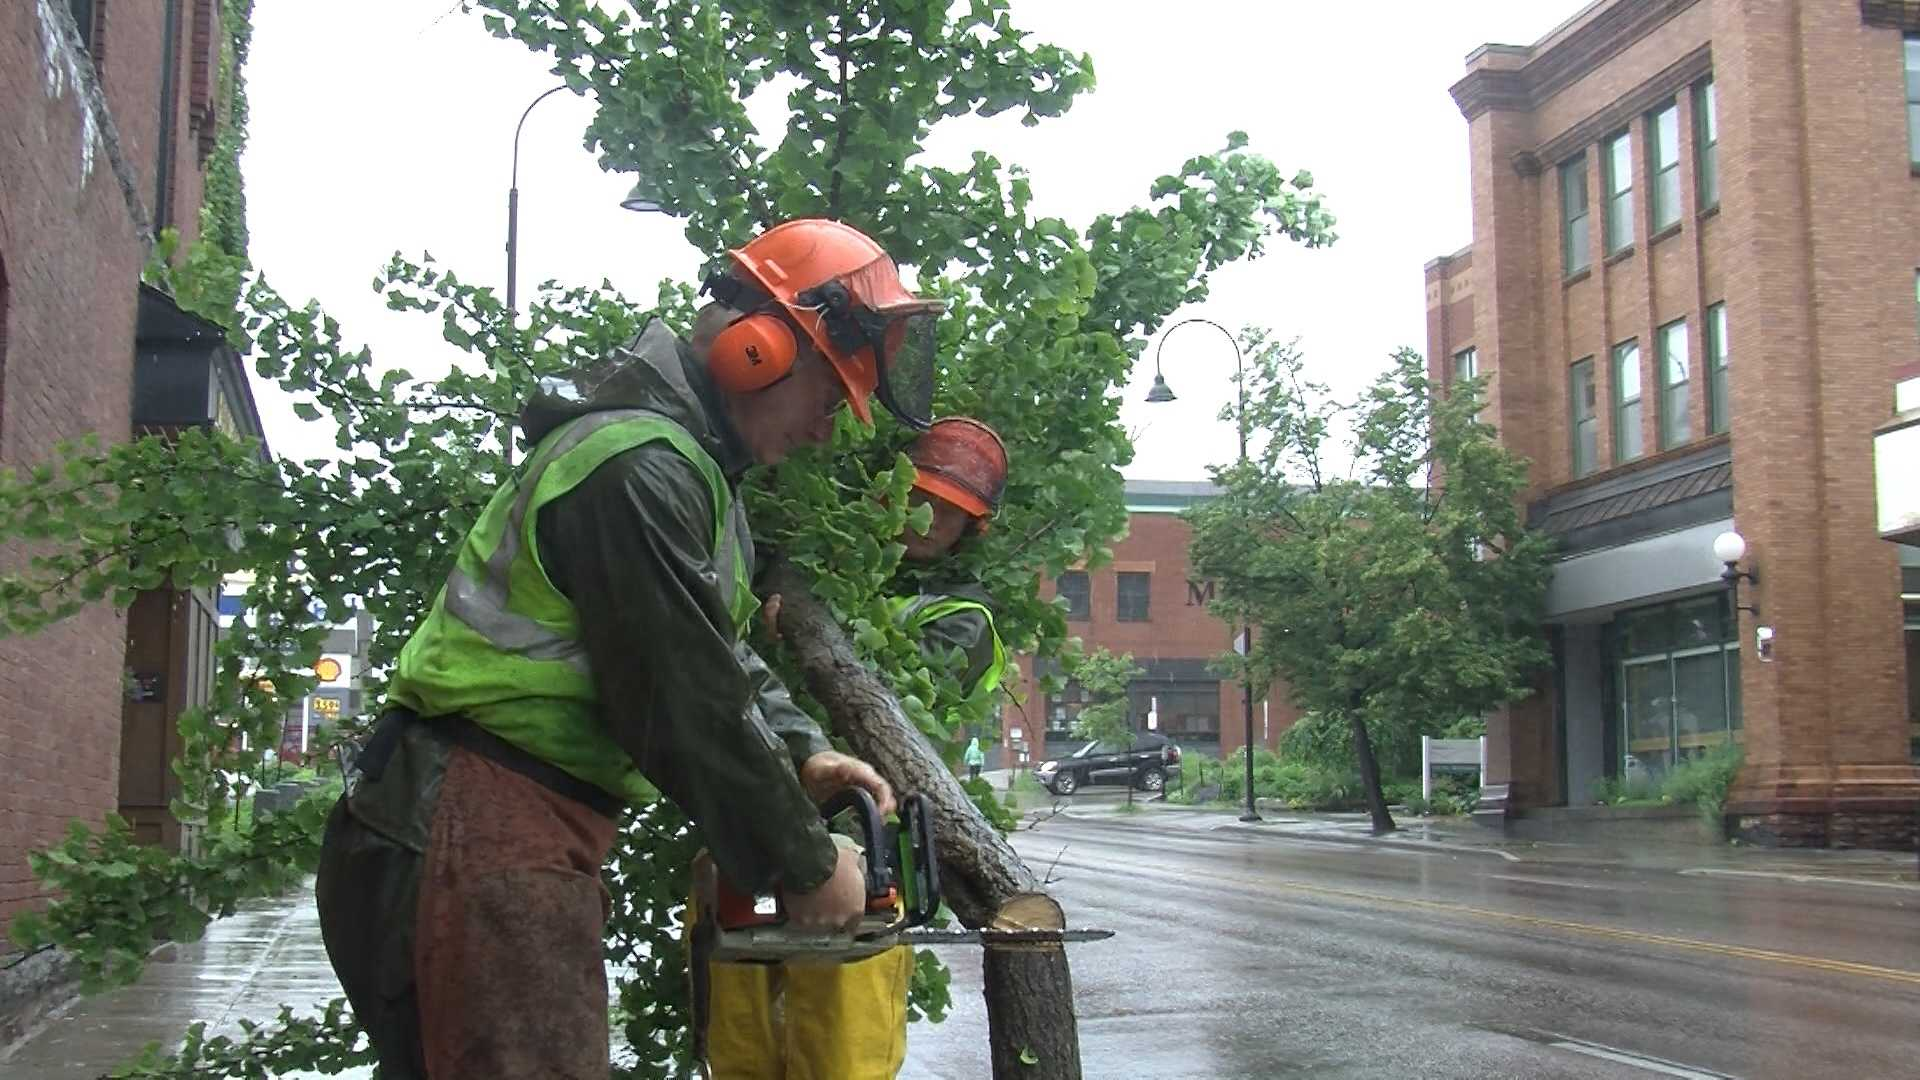 Vandals who recently hacked up four trees on South Winooski Avenue in Burlington could be costing taxpayers $6,000 to replace the greenery, but it's not just residents' wallets that are hurting.